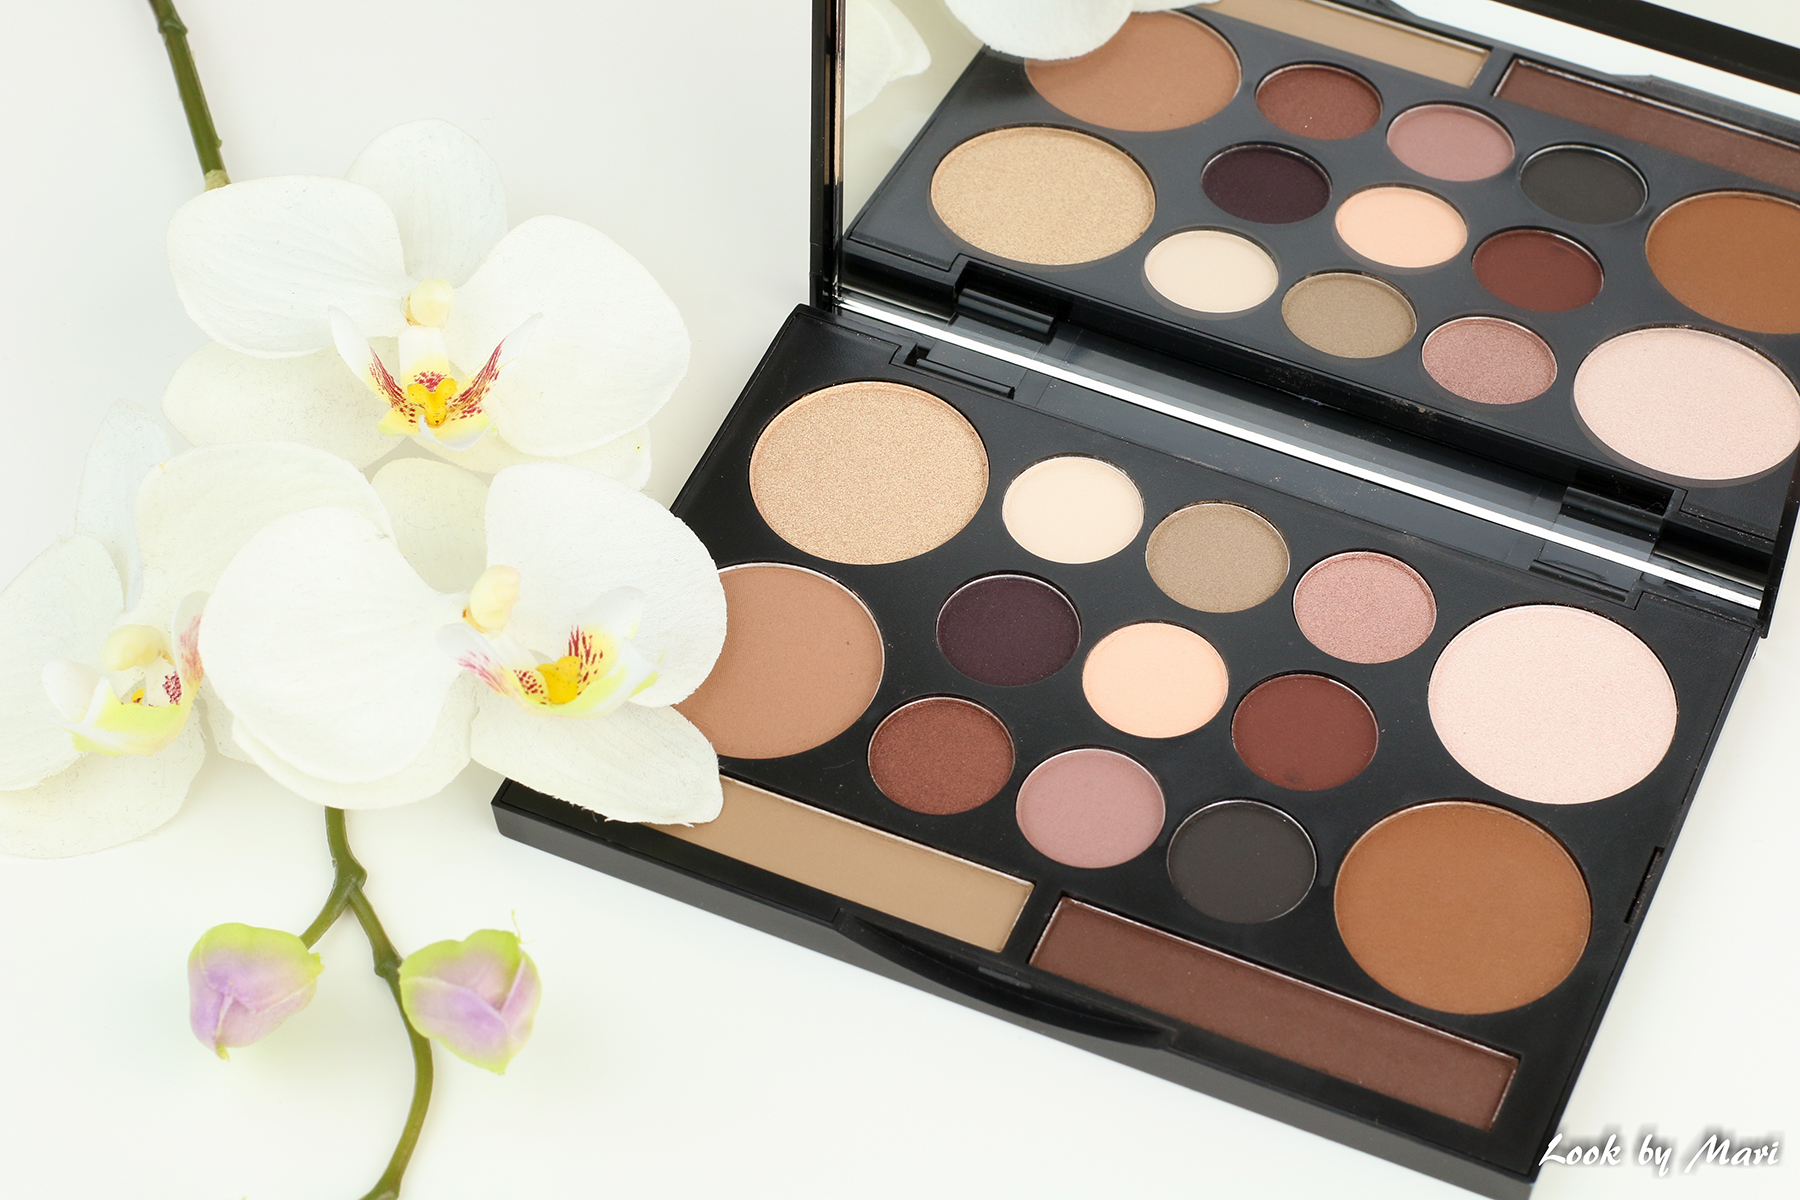 4 nyx love contours all eyeshadow and face sculpting palette review kokemuksia kokemukset